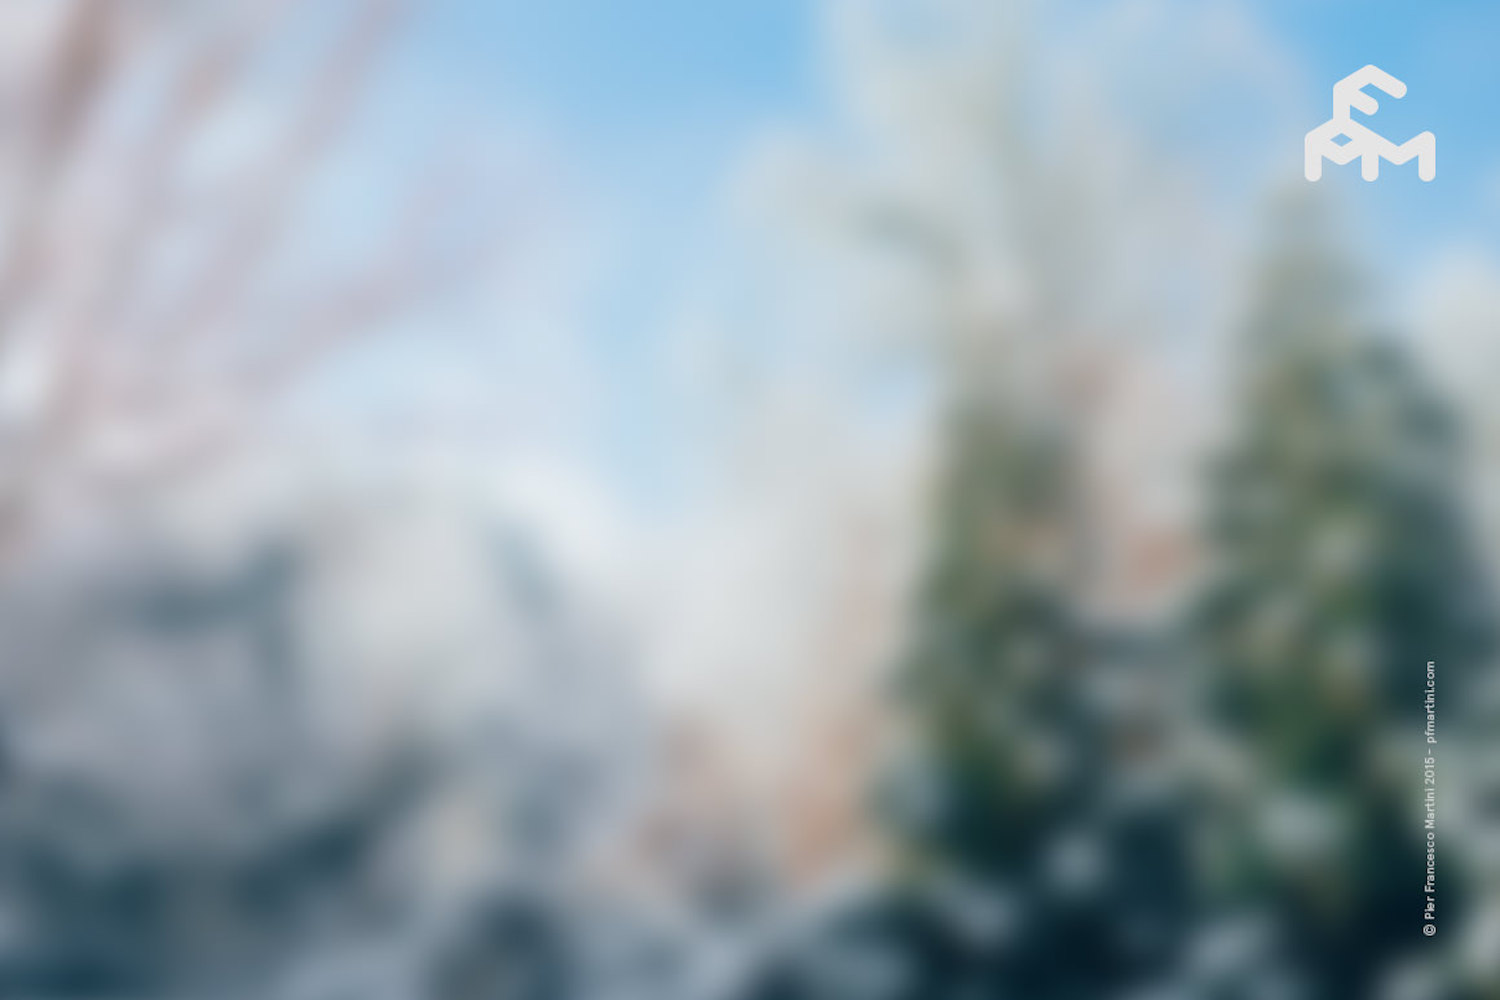 20 Winter Blurred Backgrounds example image 2